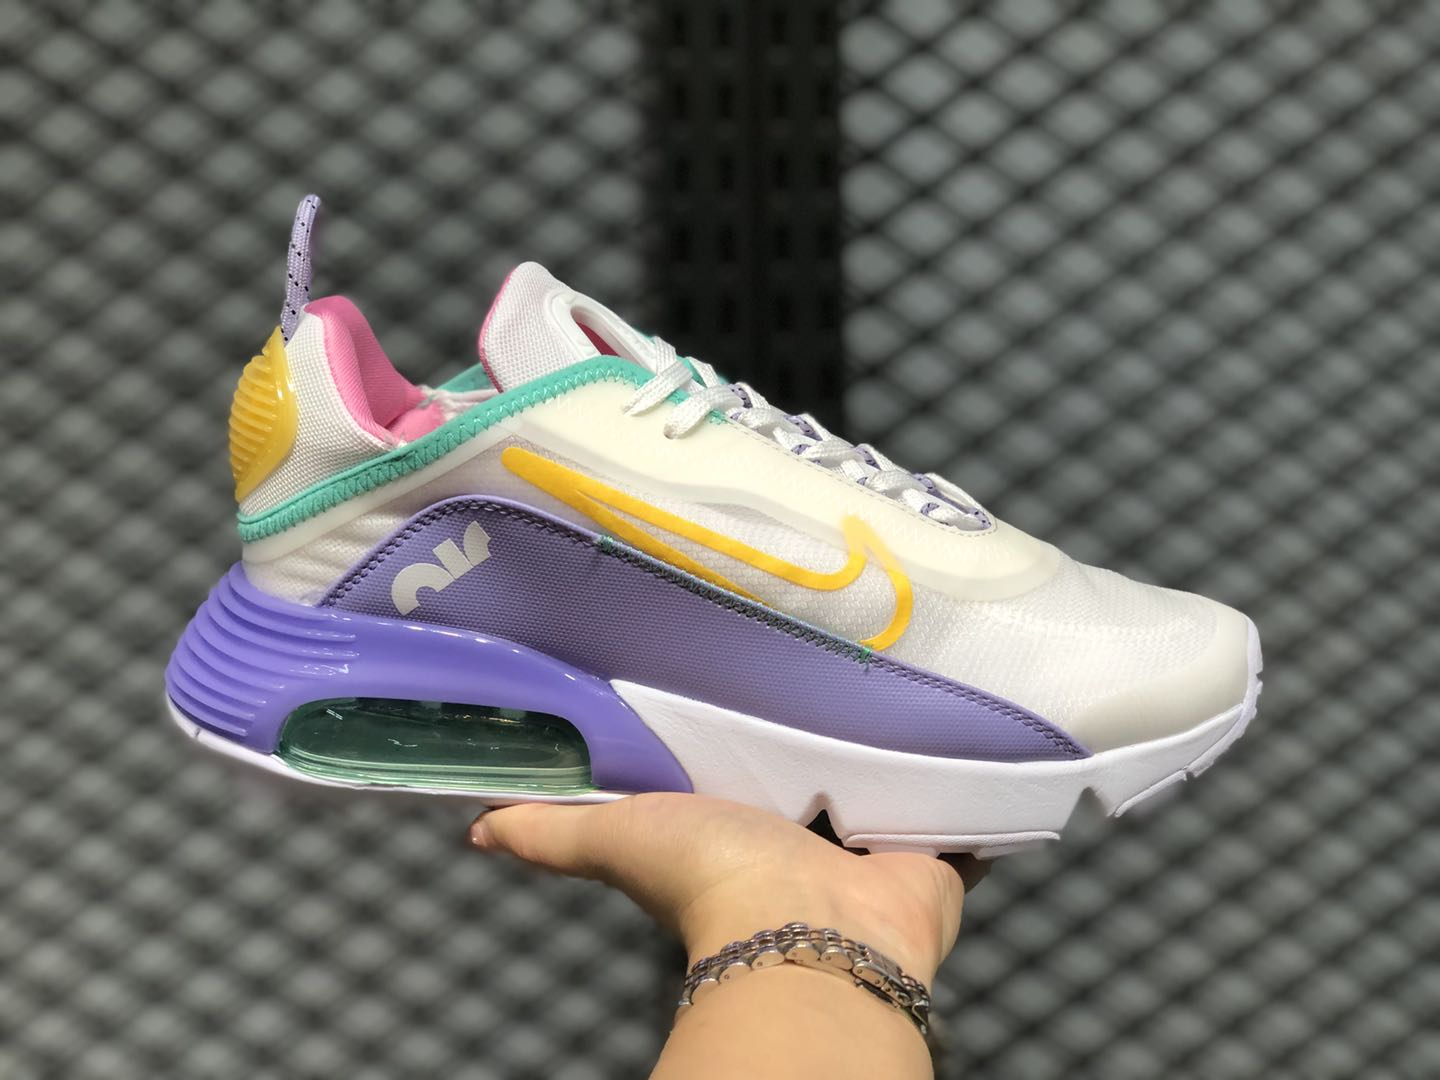 2020 Latest Nike Air Max 2090 White-Violet-Pink-Bright Yellow CT7698-009